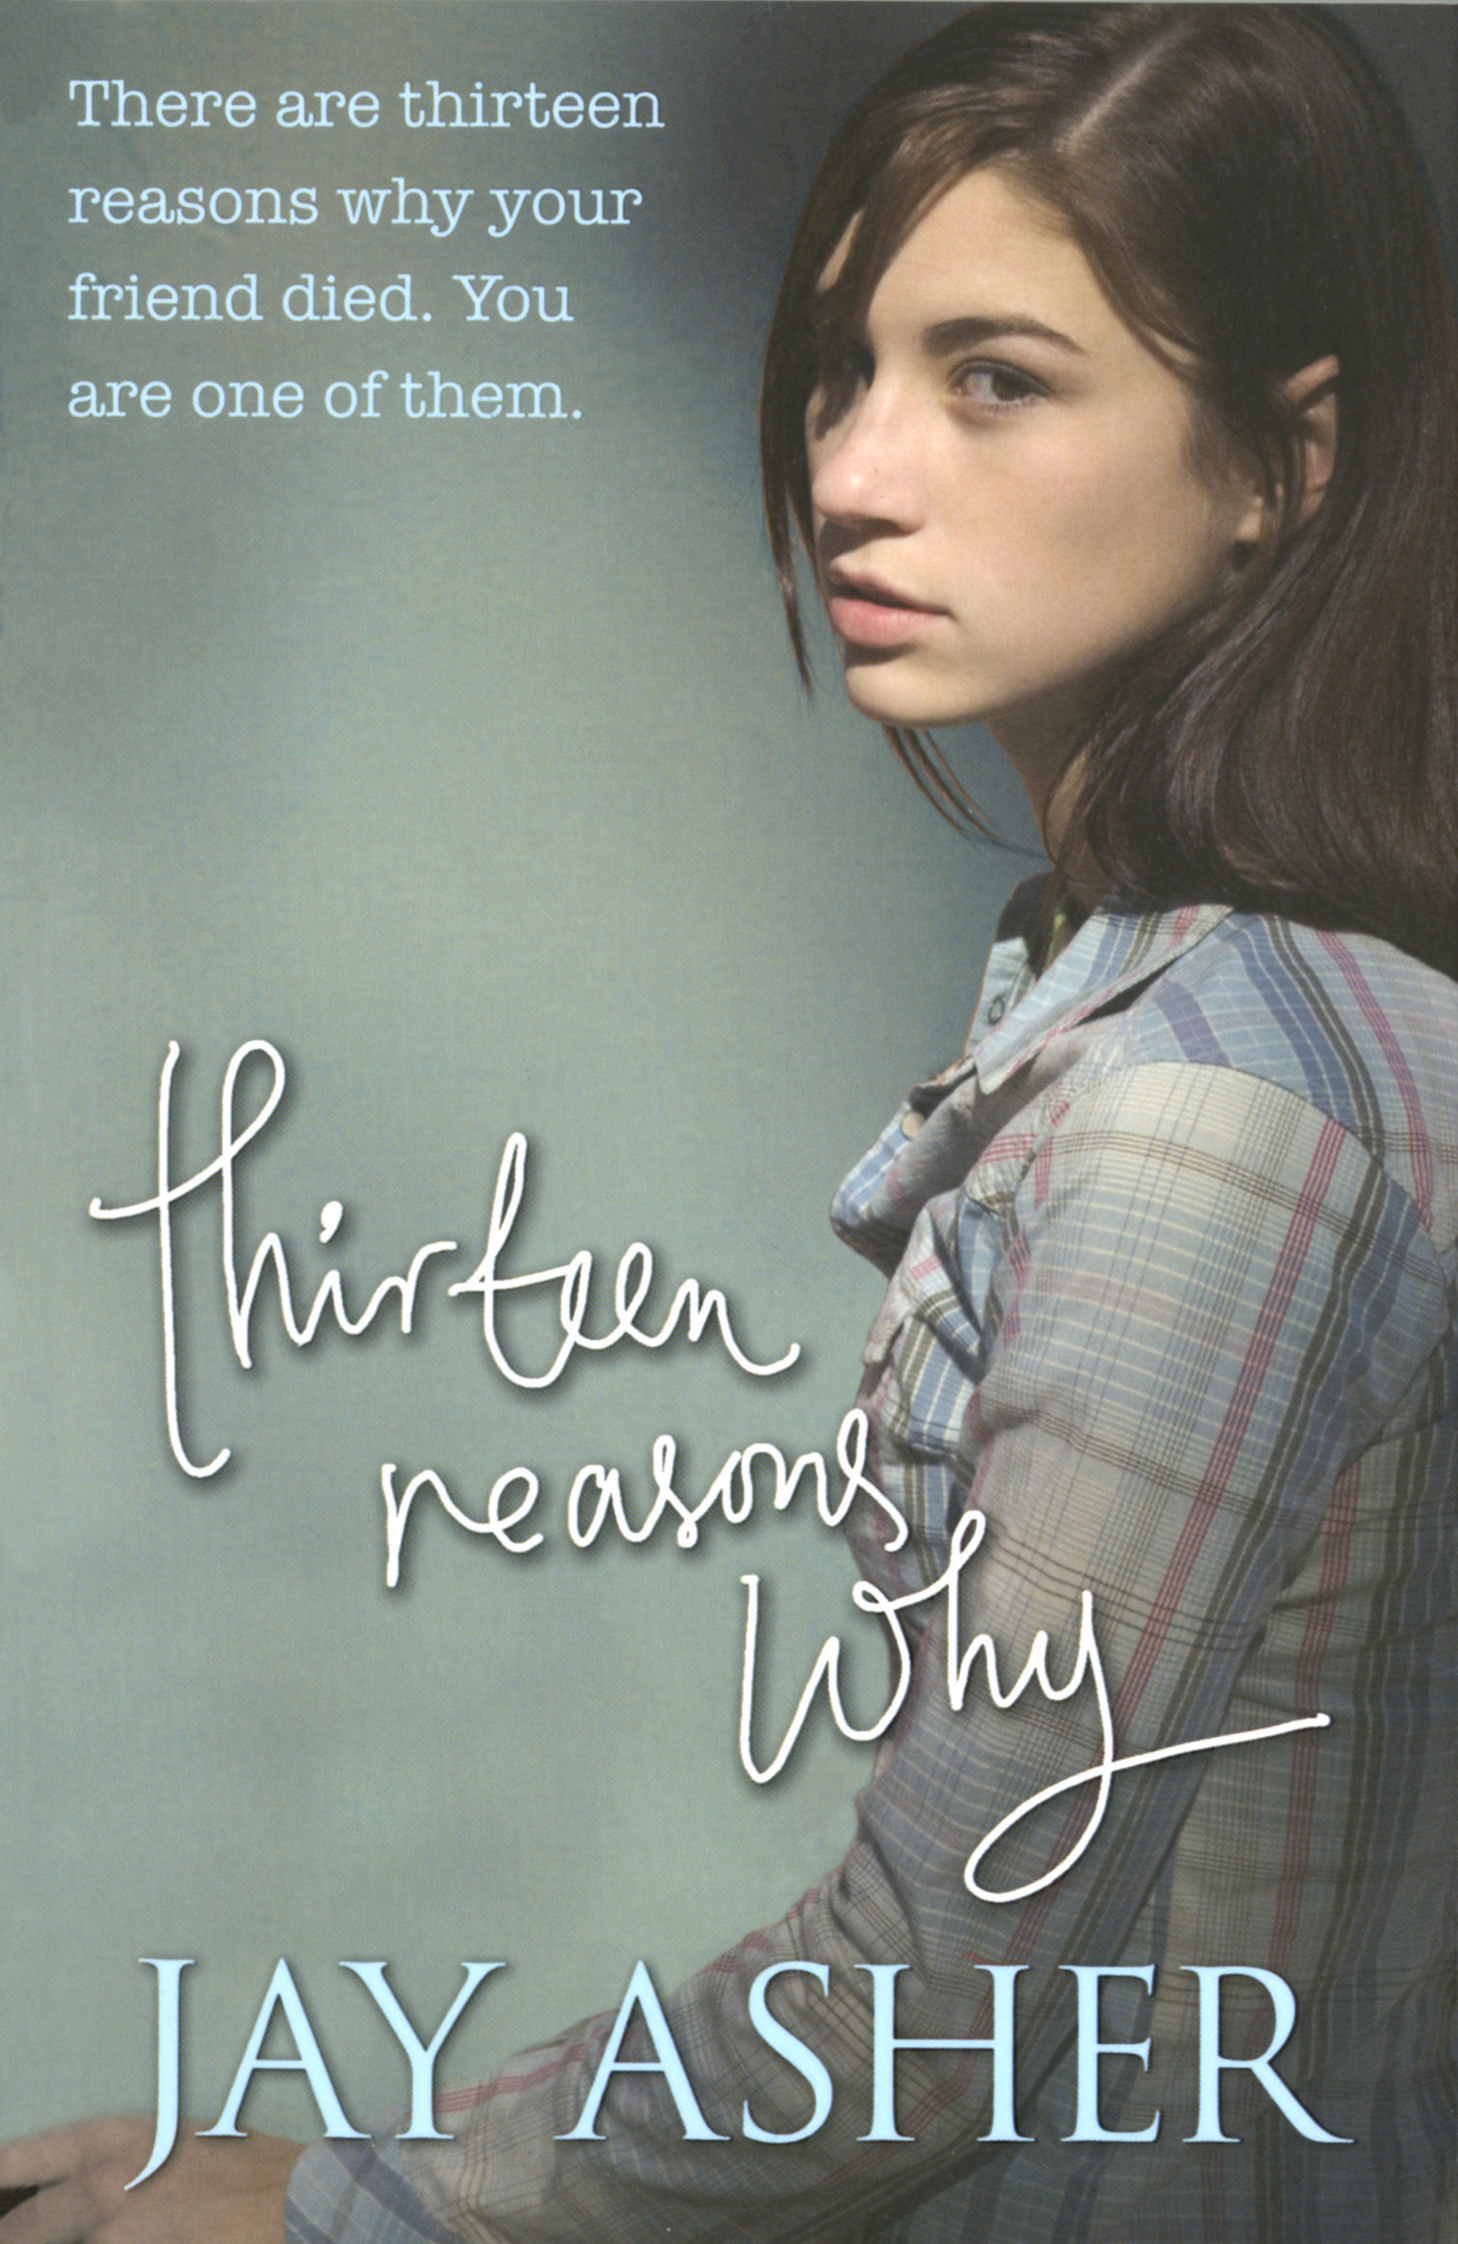 13 reasons why - photo #3